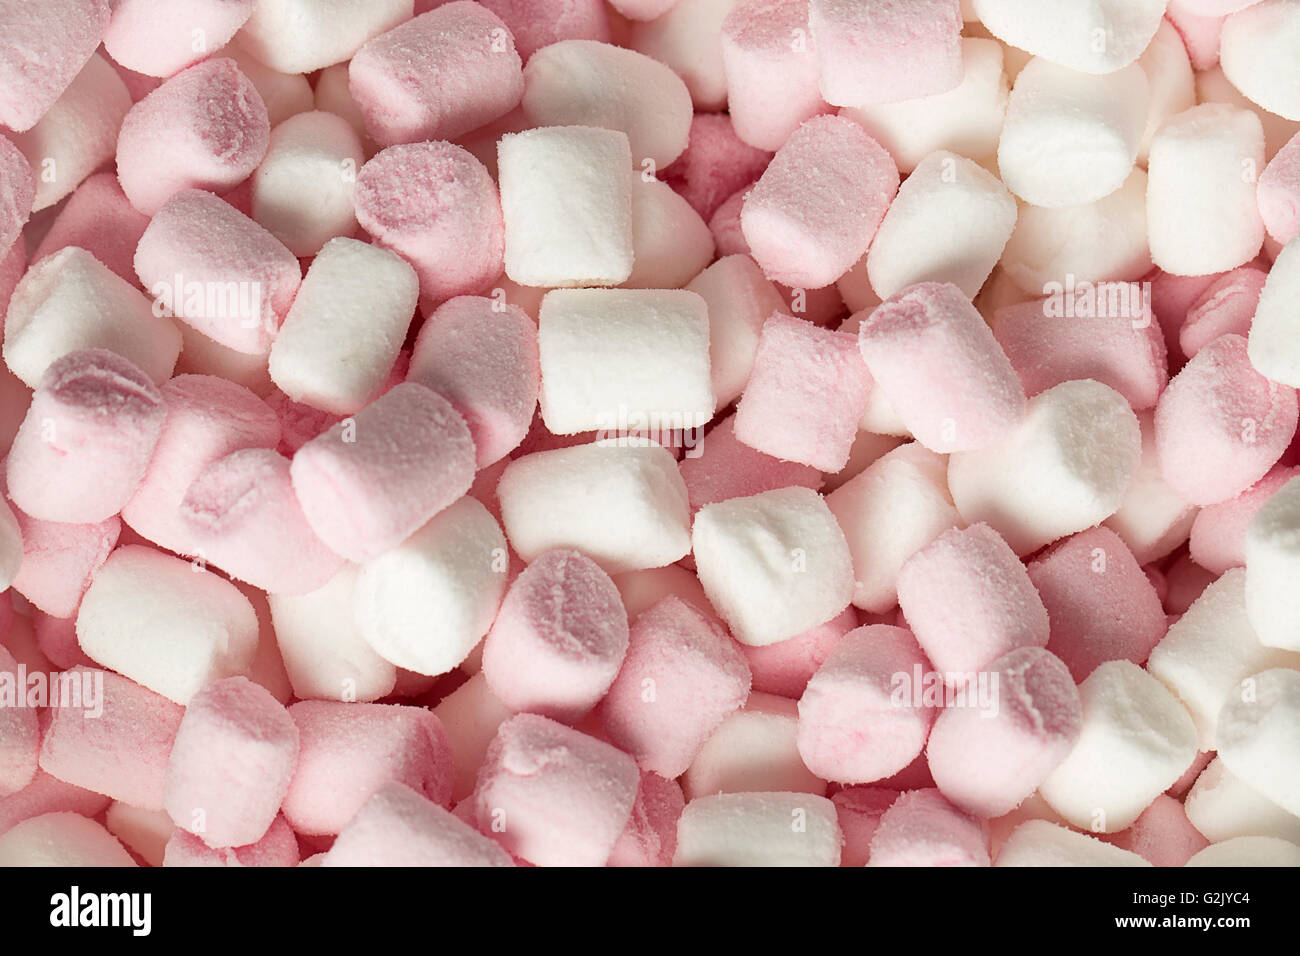 Pink and white marshmallows - Stock Image